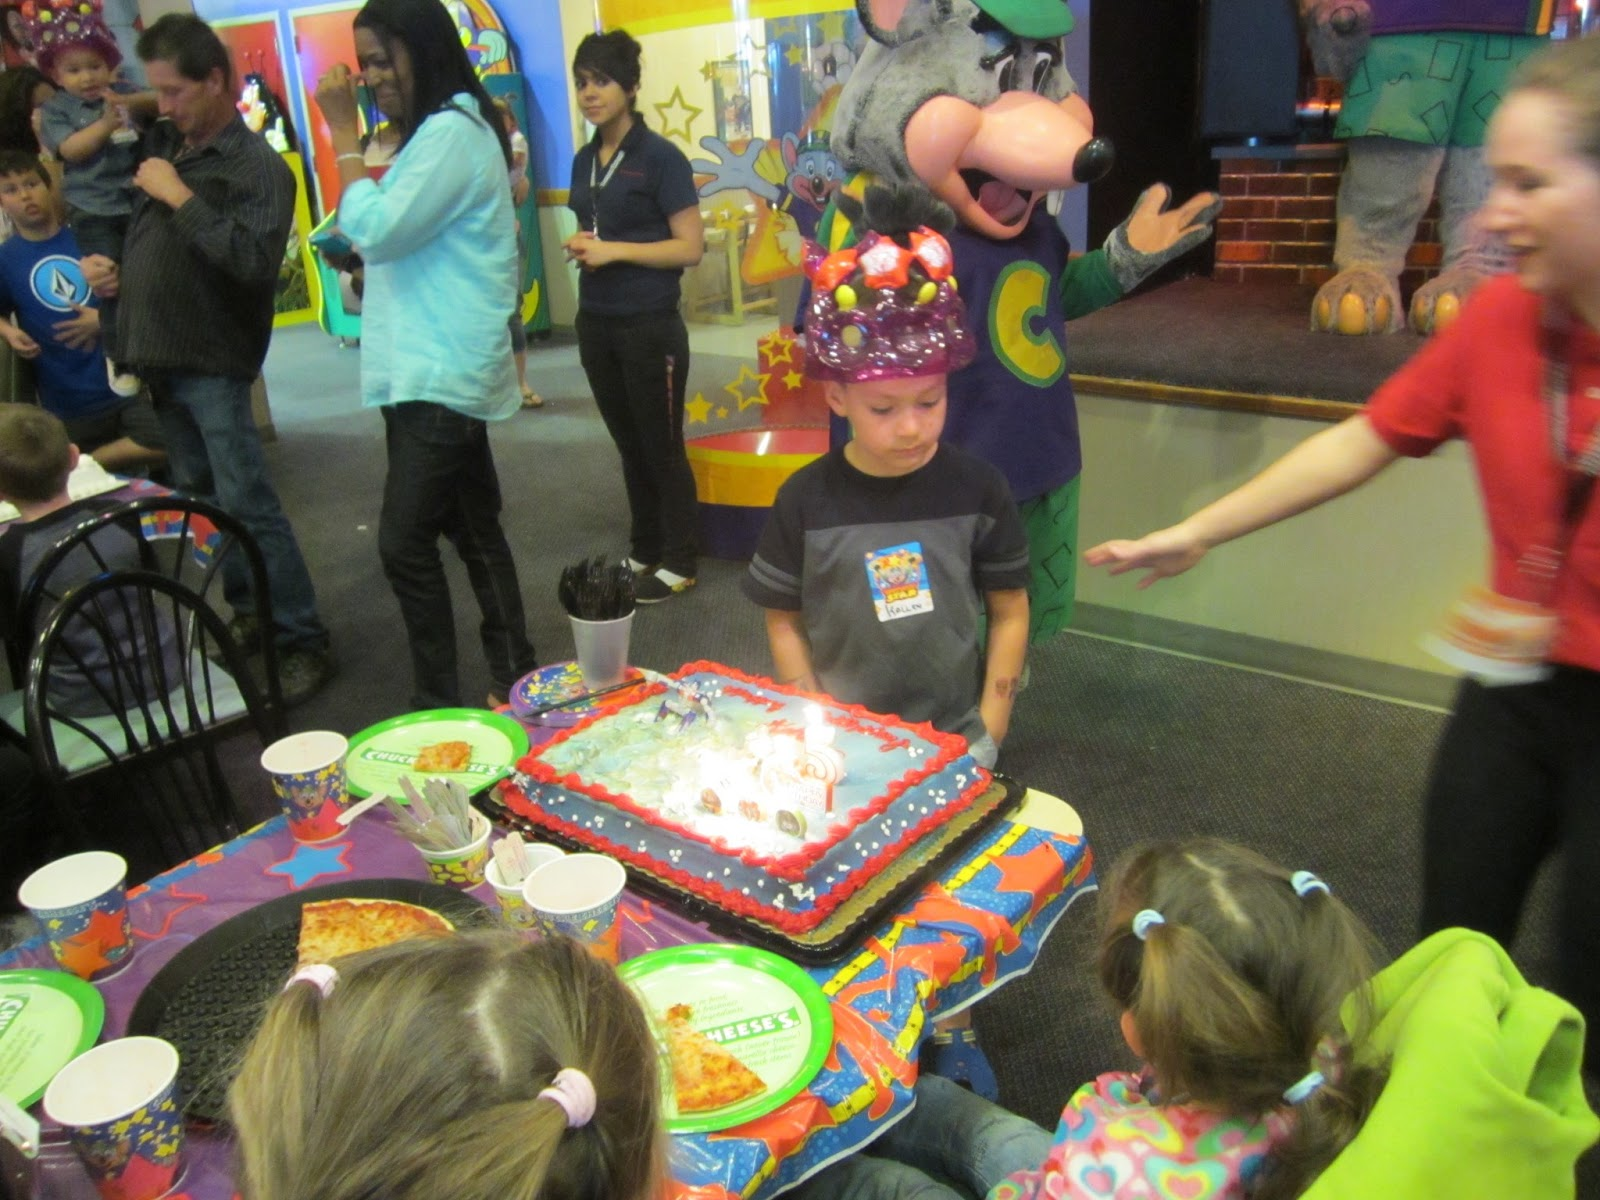 Sirifam Chuck E Cheese Birthday Party